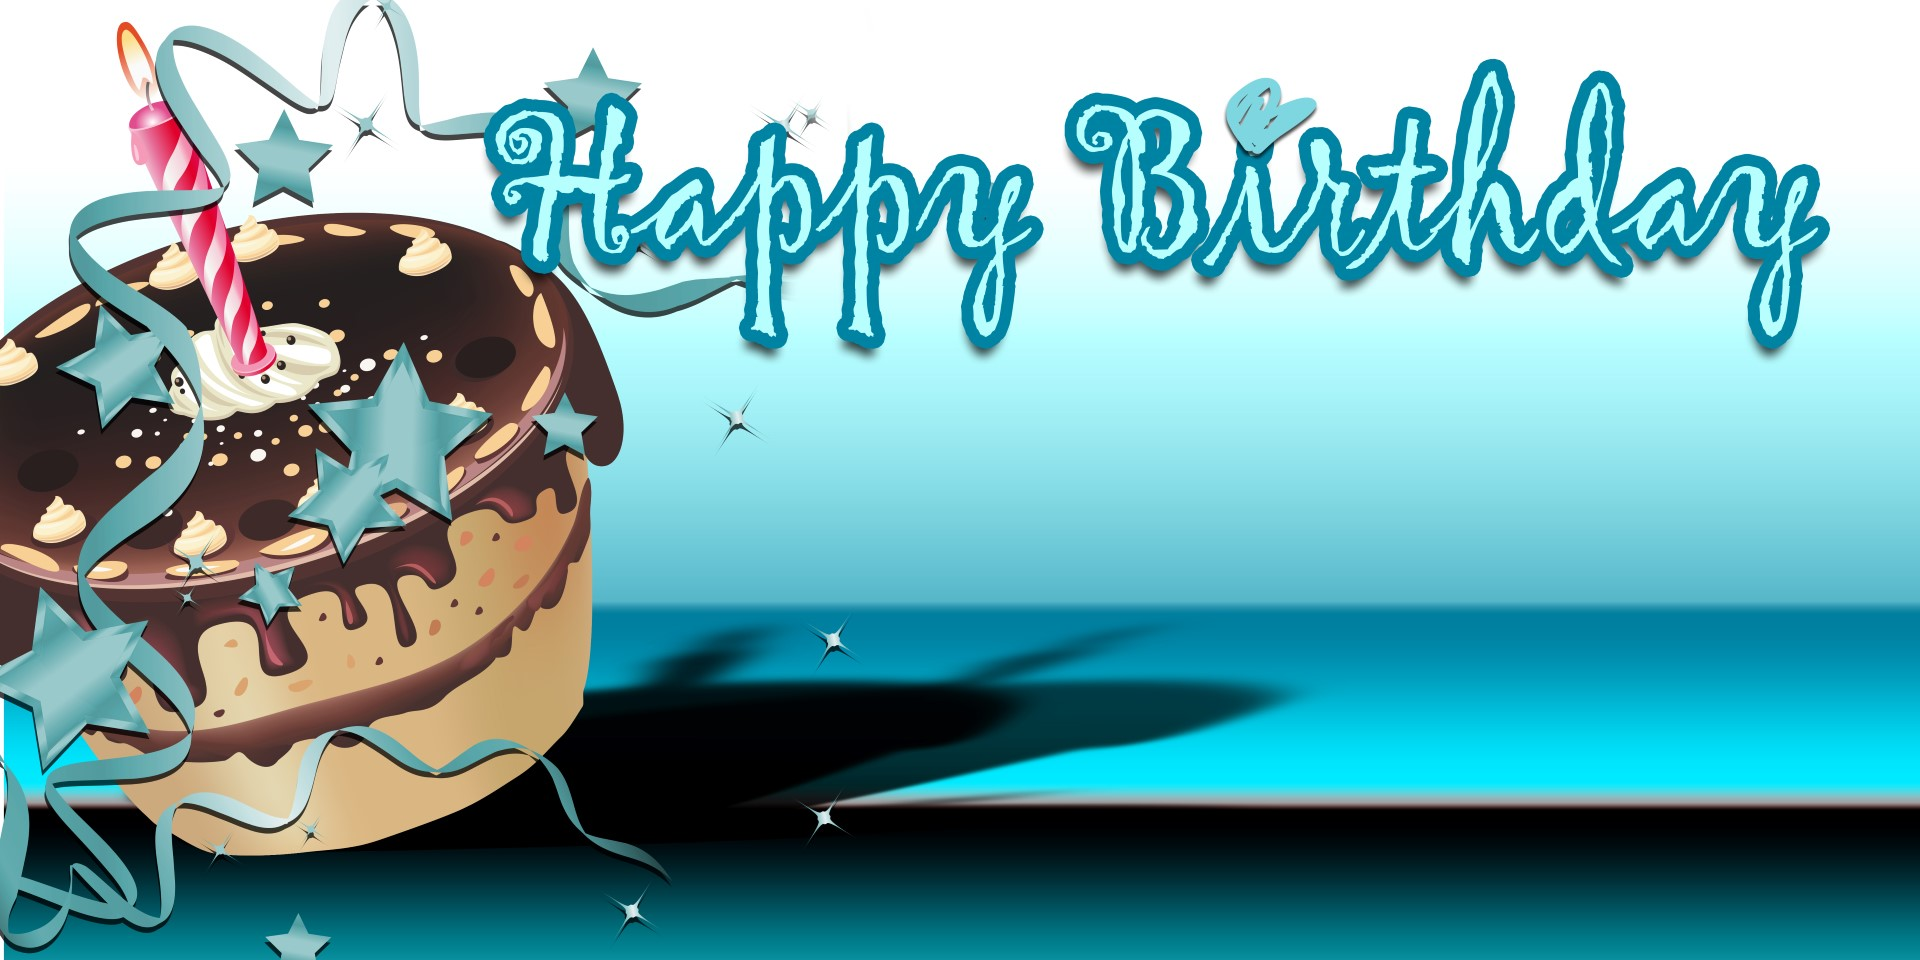 birthday banner design with photo ; Happy-Birthday-Banner-%25E2%2580%2593-Teal-Cake-1920x960